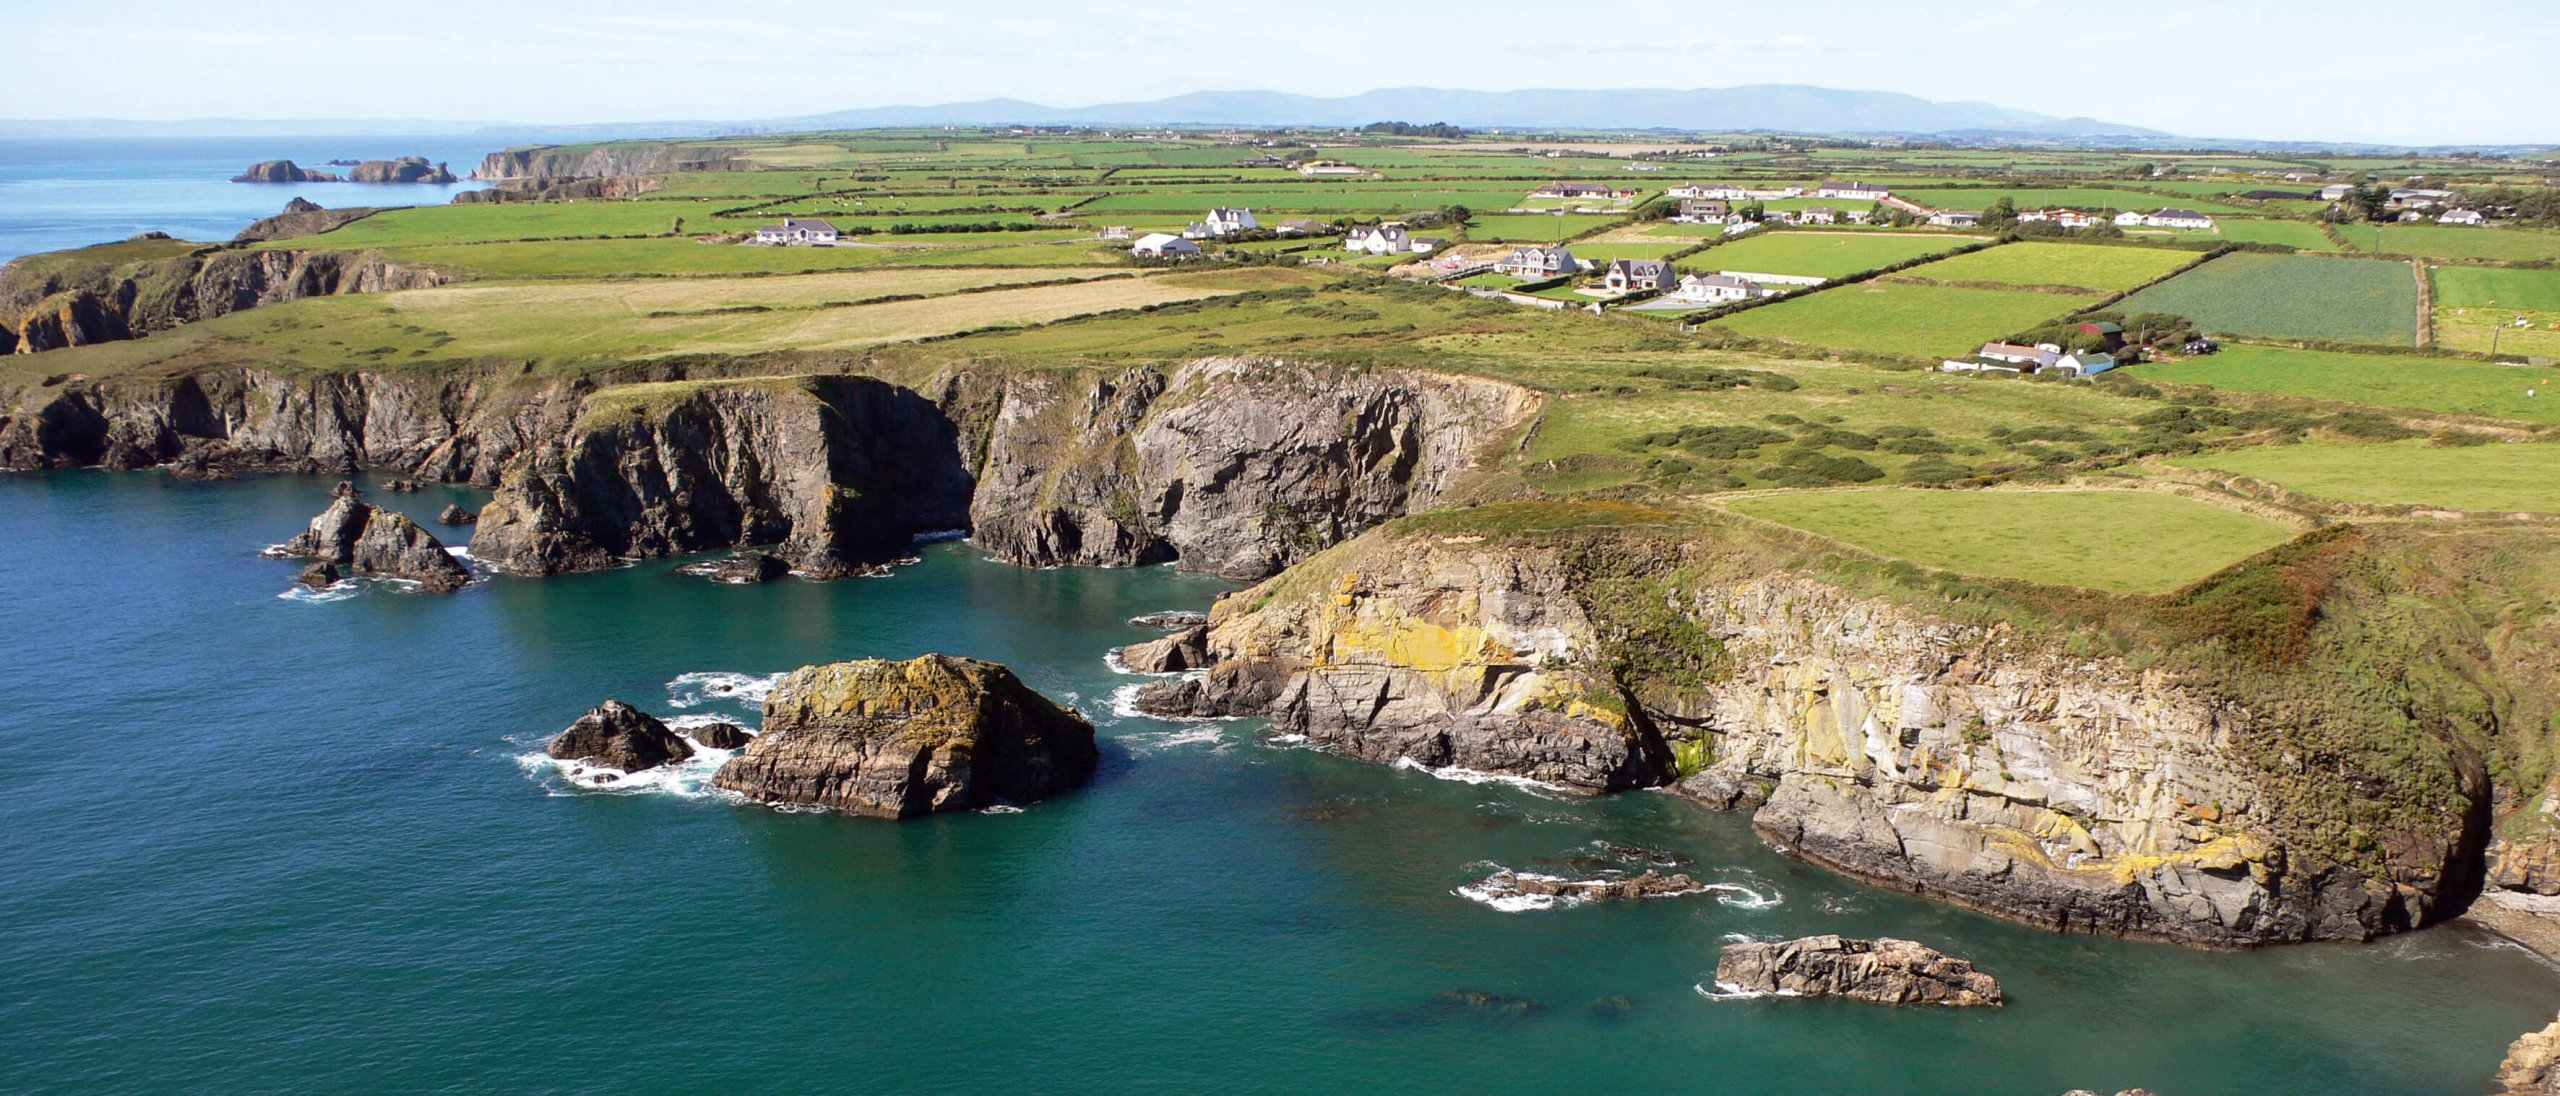 Copper Coast in Waterford with green patchwork fields and cliffs